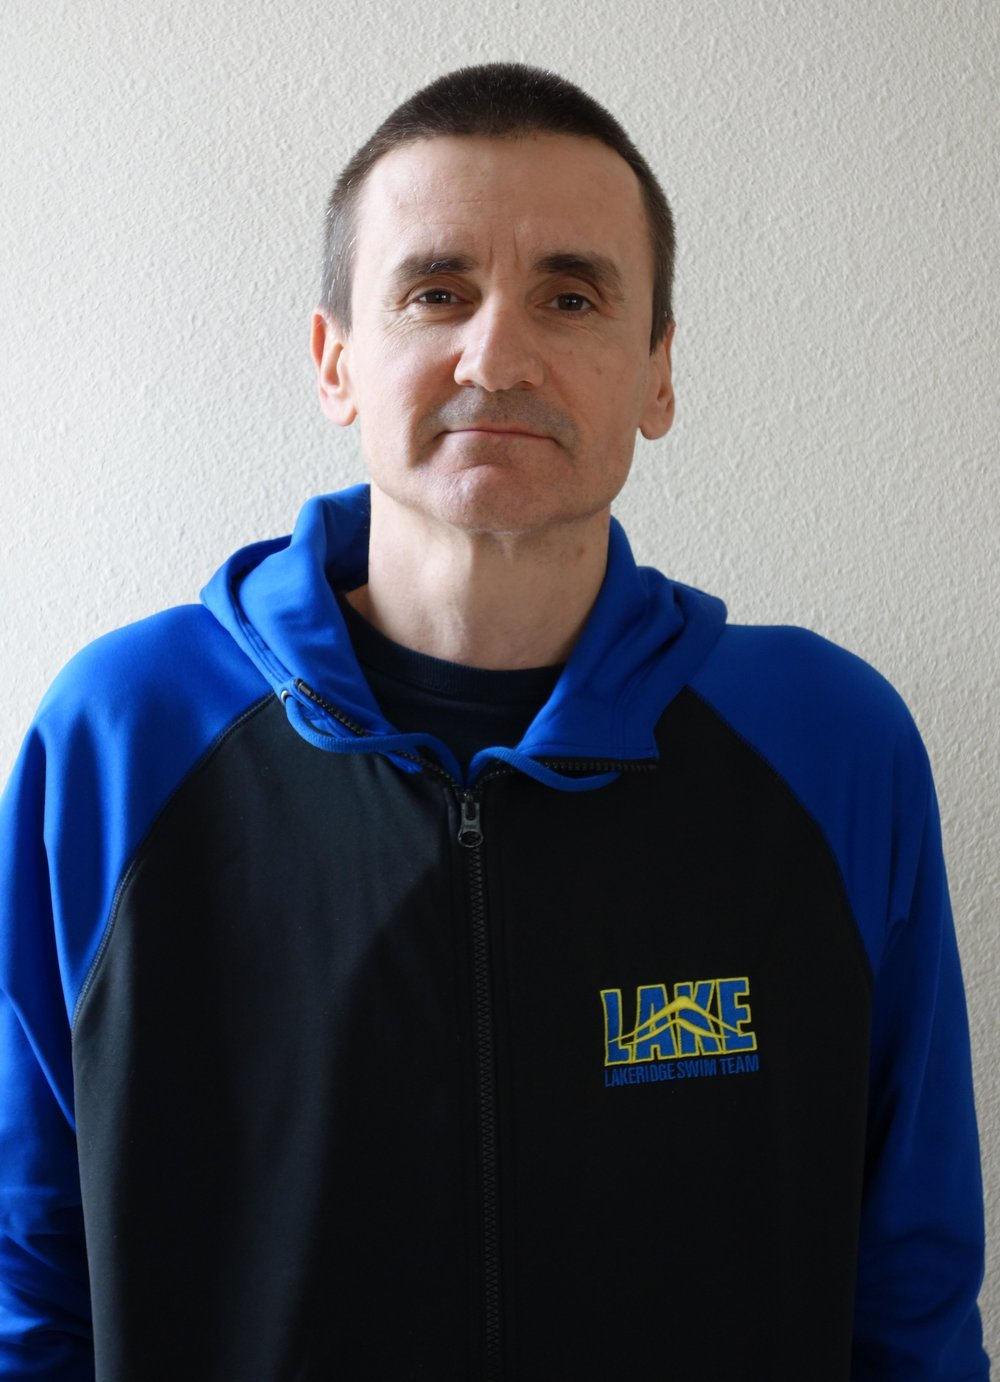 Nenad Rodic, Senior Swim Coach